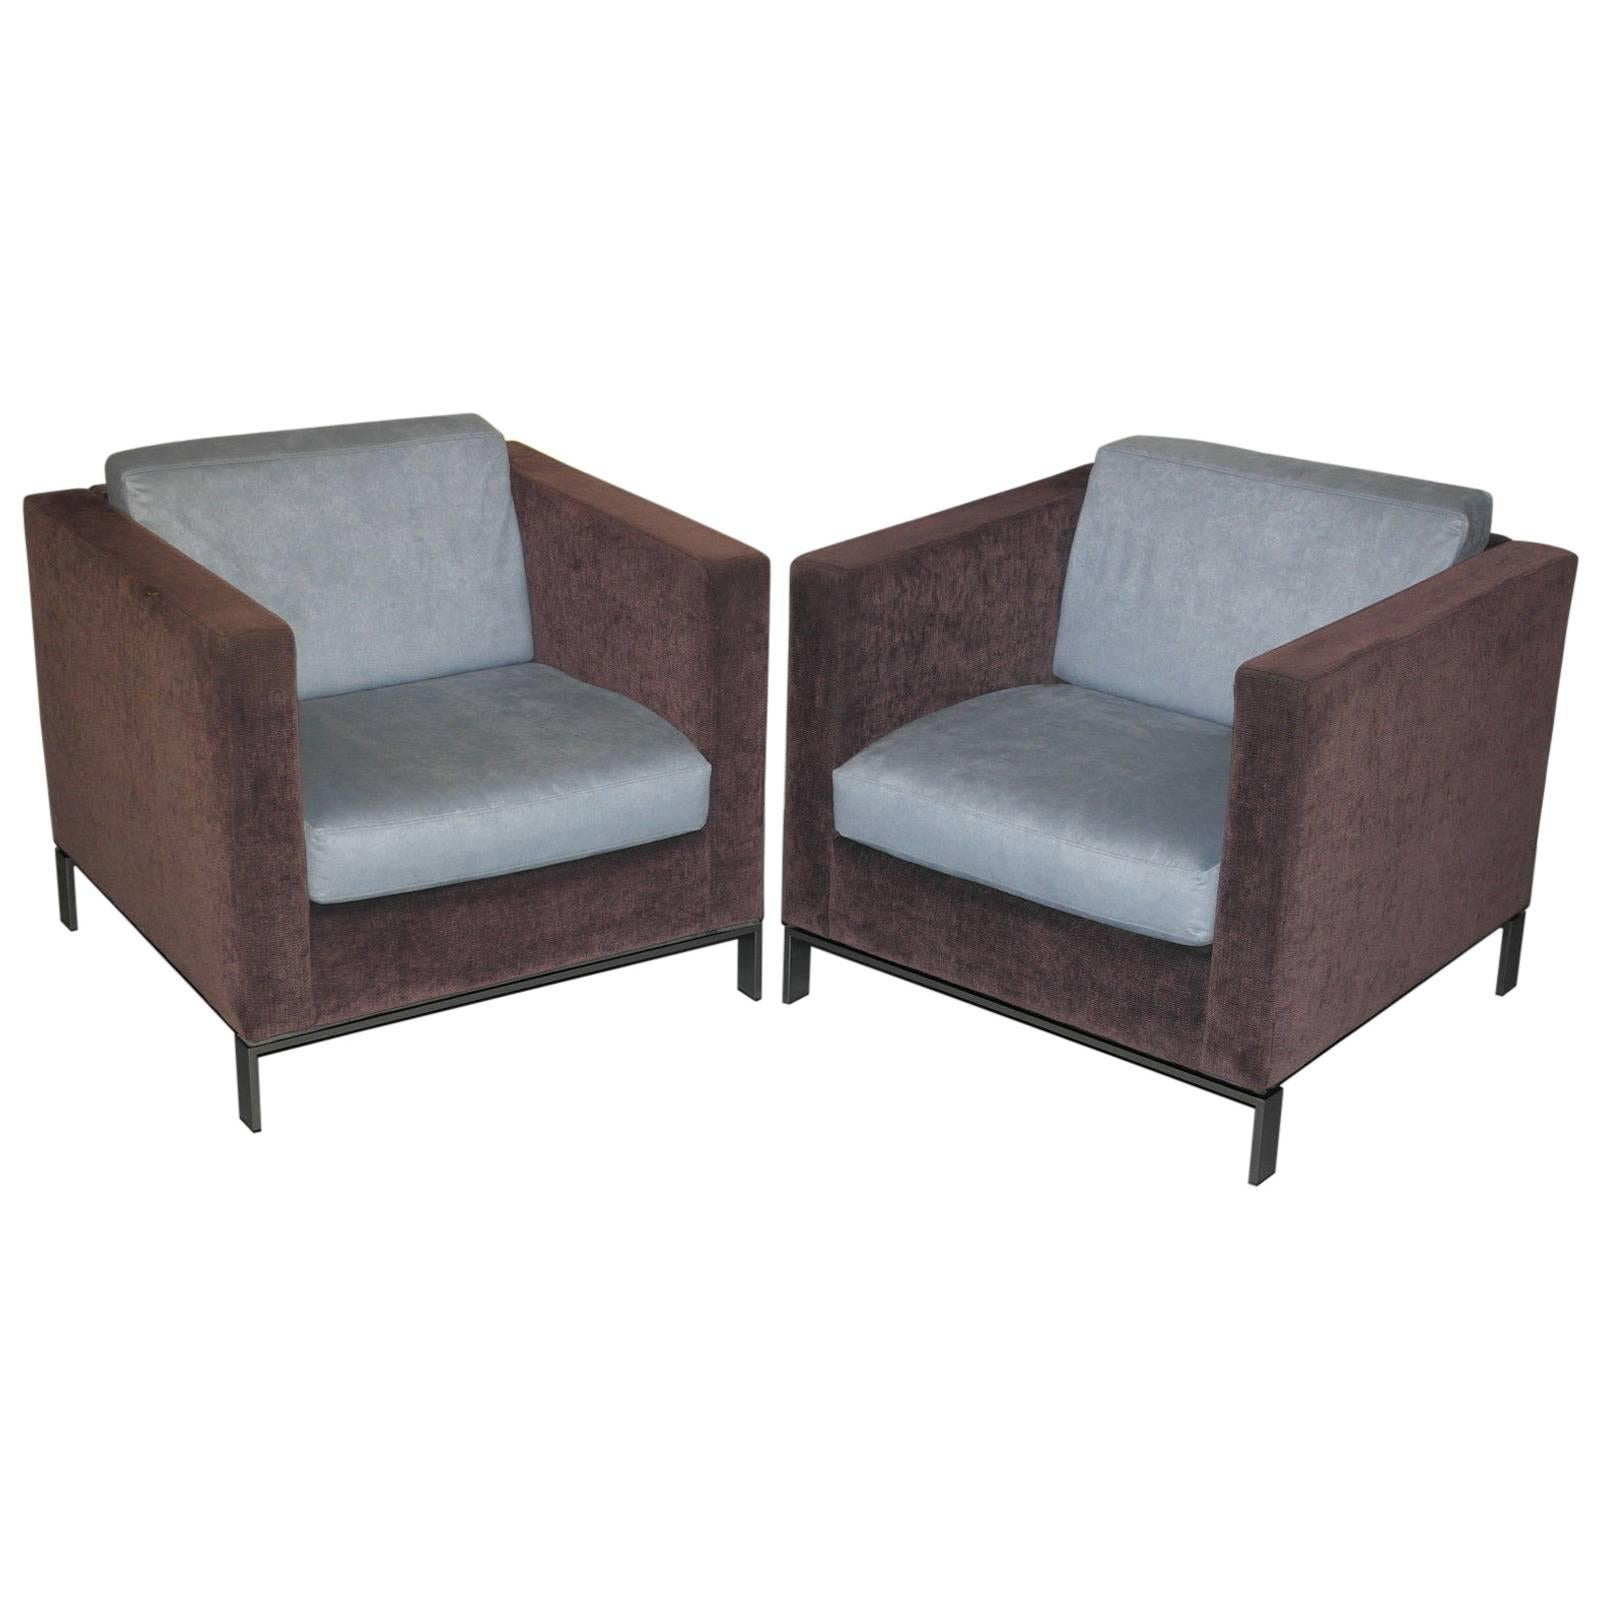 Pair Of Very Rare Walter Knoll Foster 500 Contemporary Armchairs For Sale